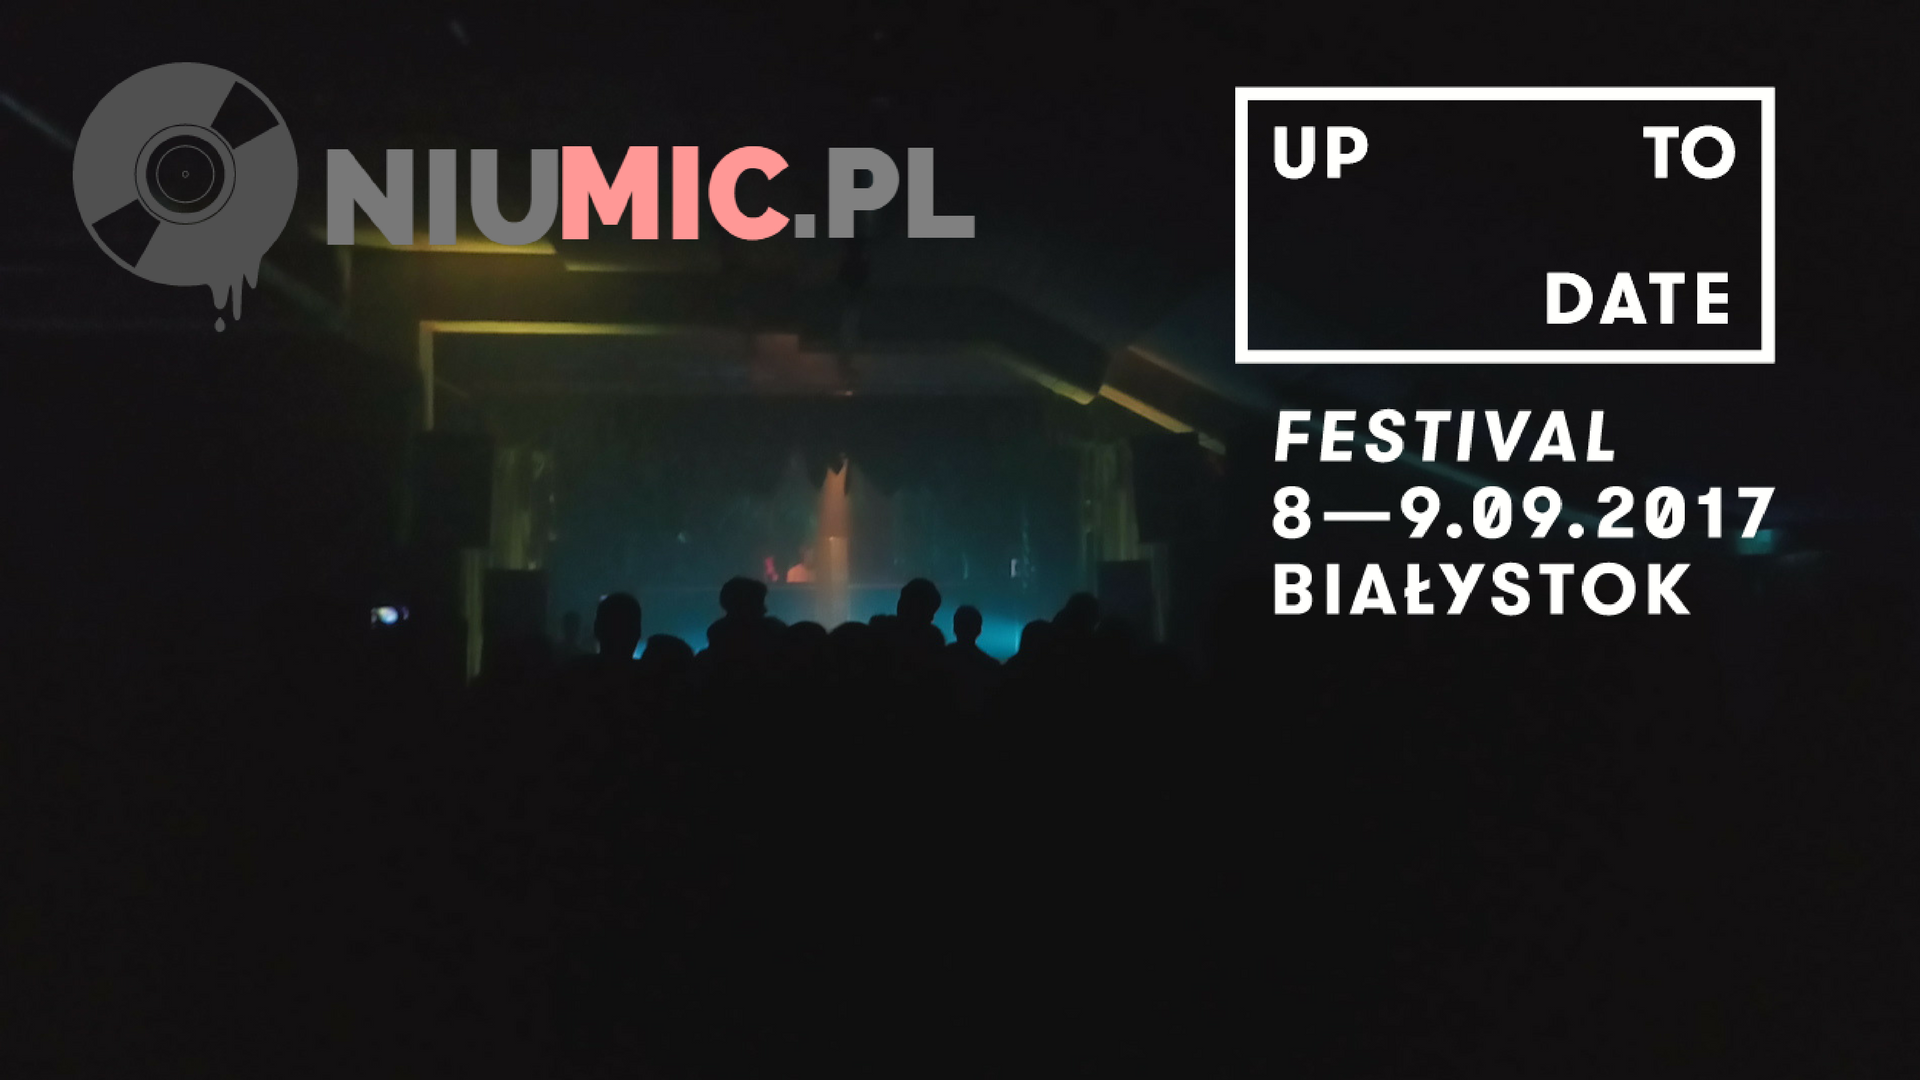 Up To Date Festival 2017 || Relacja || Videorelacja